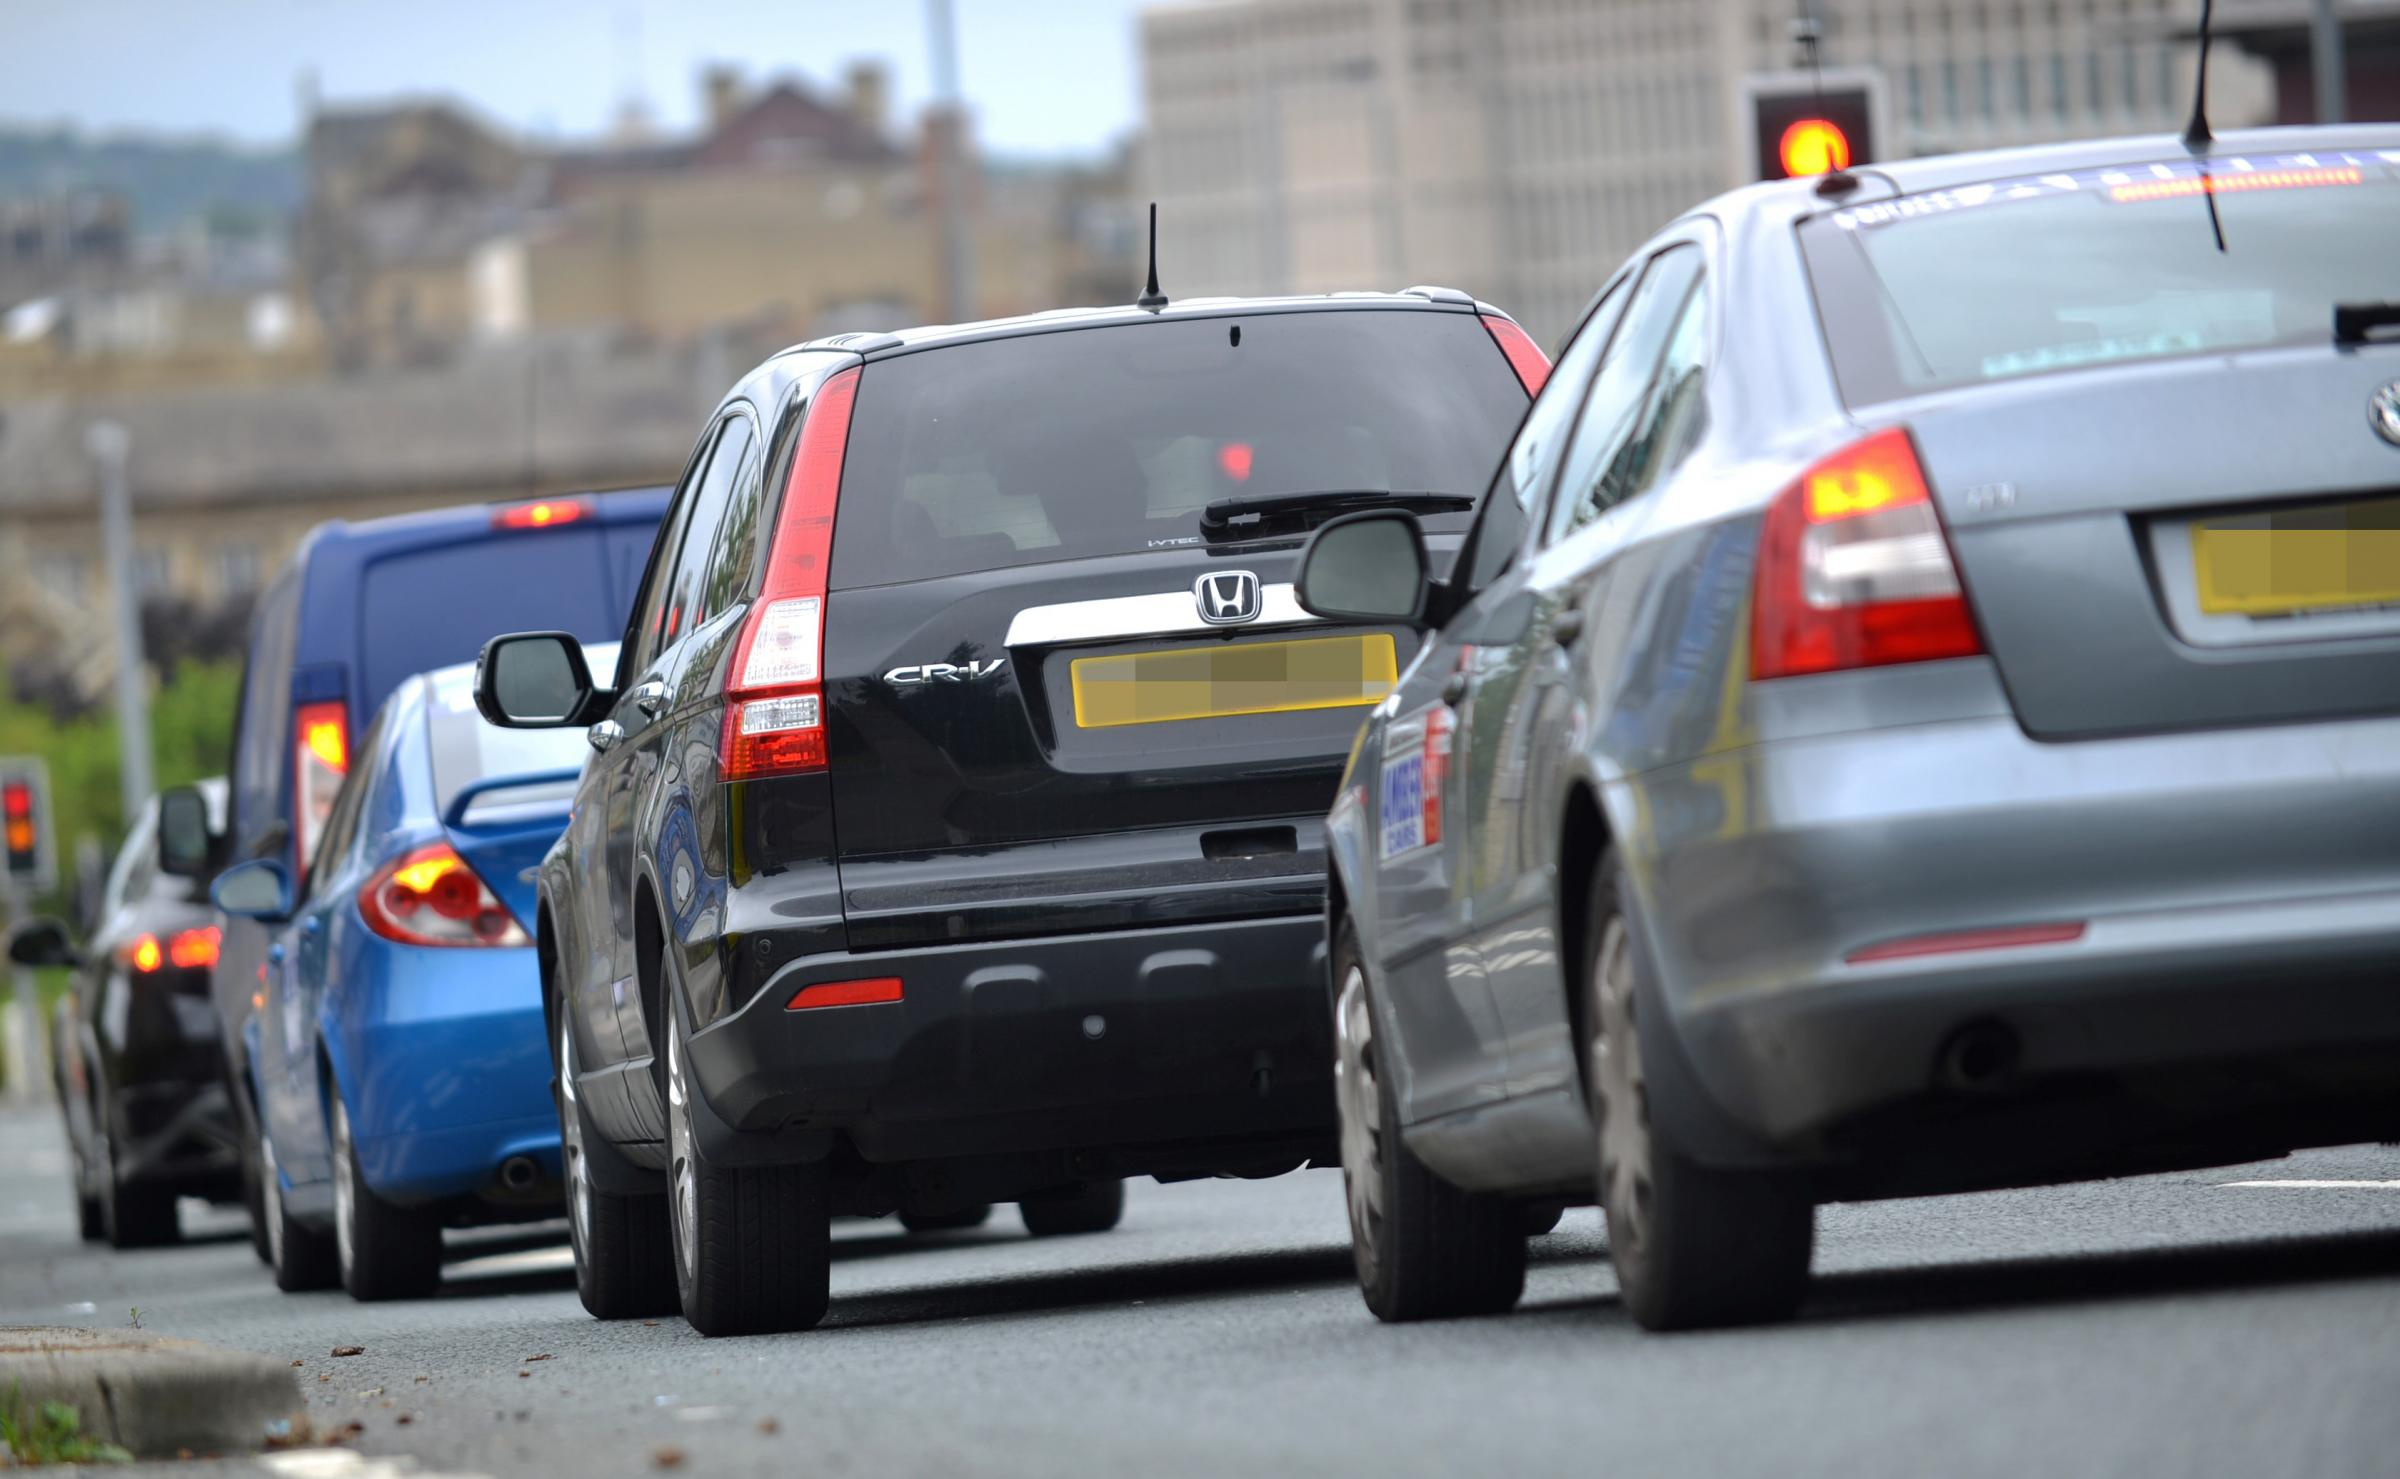 Redbridge has second highest car insurance premiums in the UK